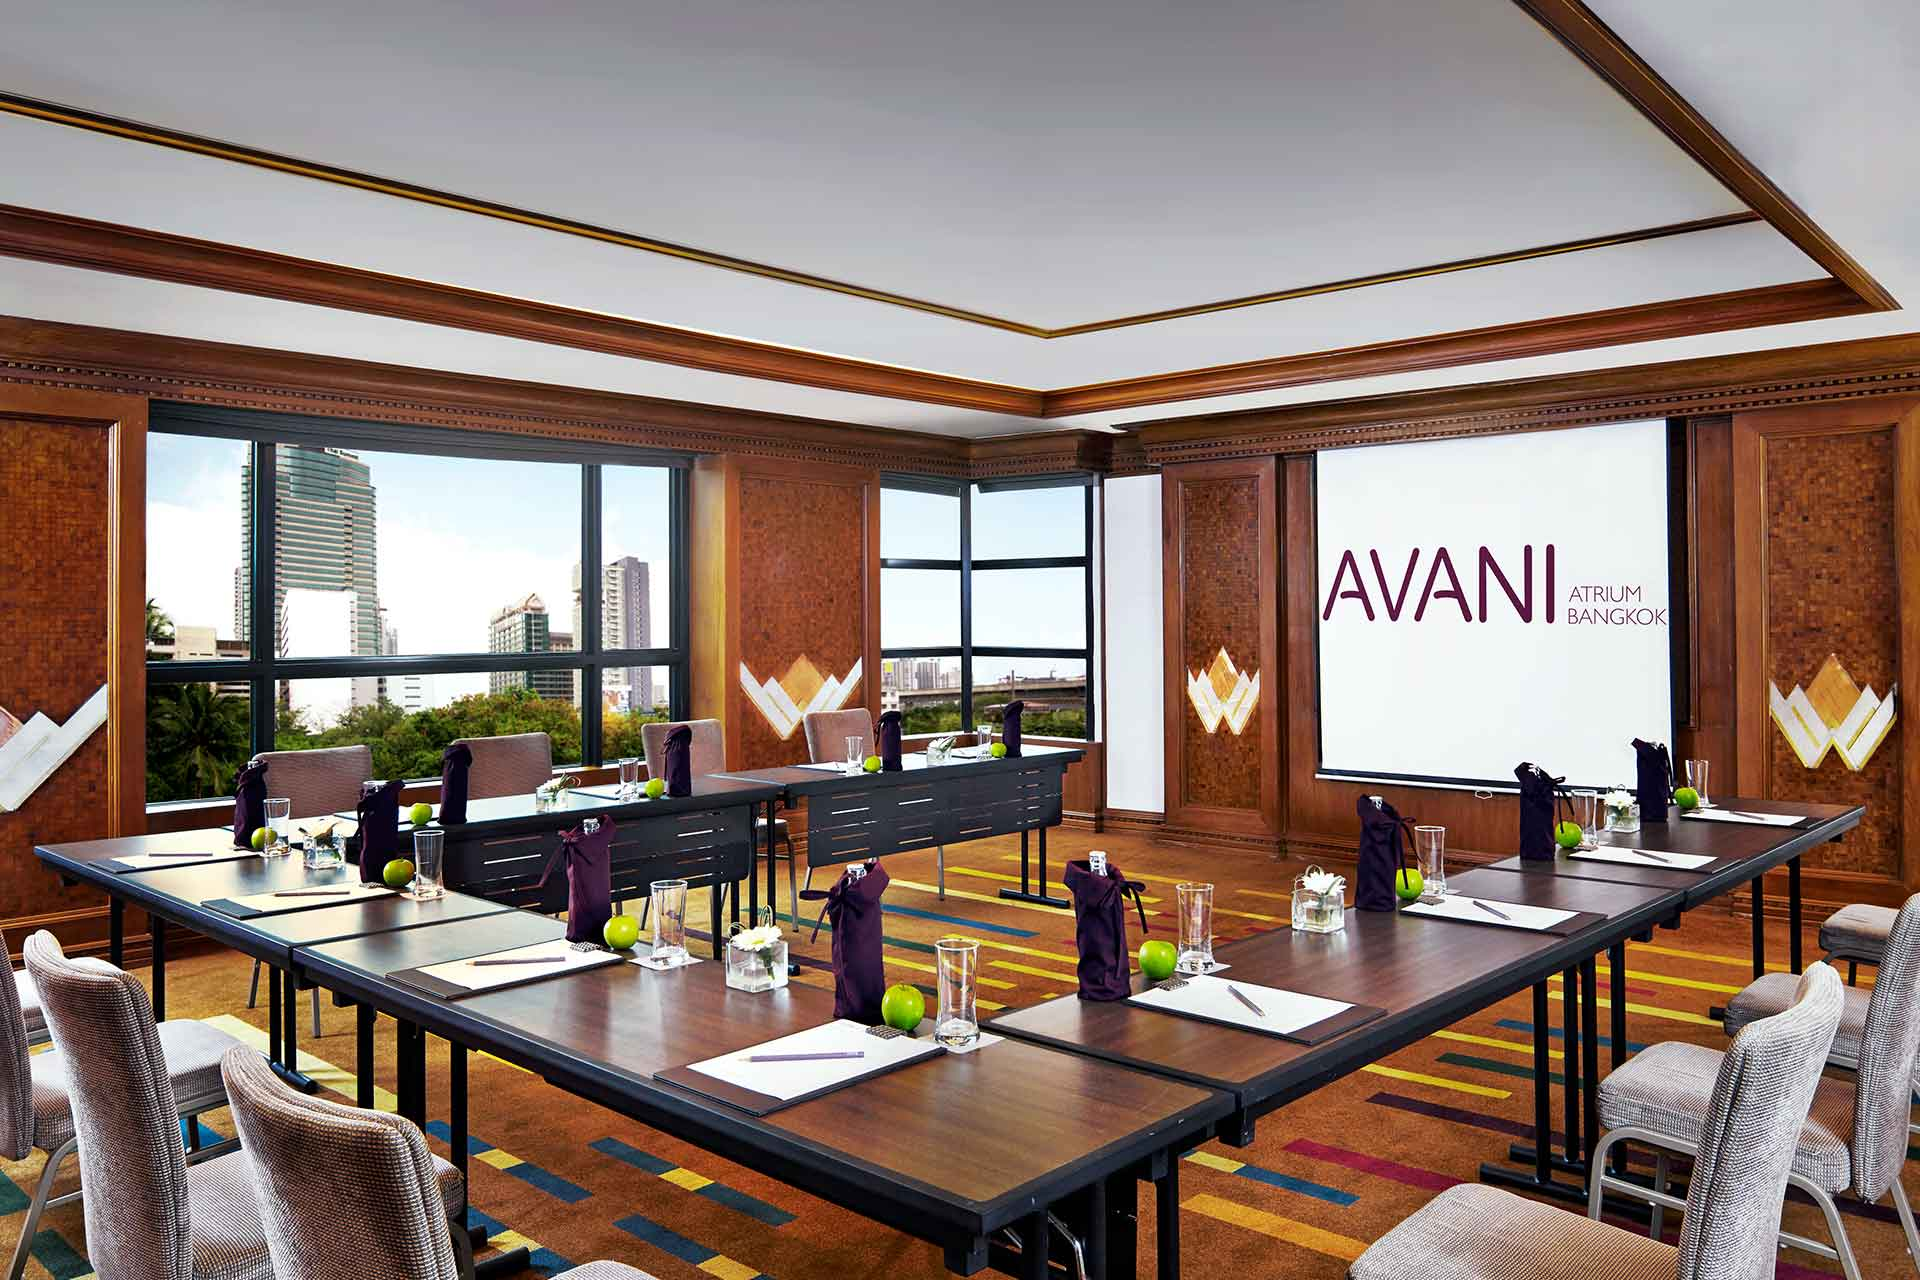 Photos of AVANI Atrium Bangkok tubtim meeting area